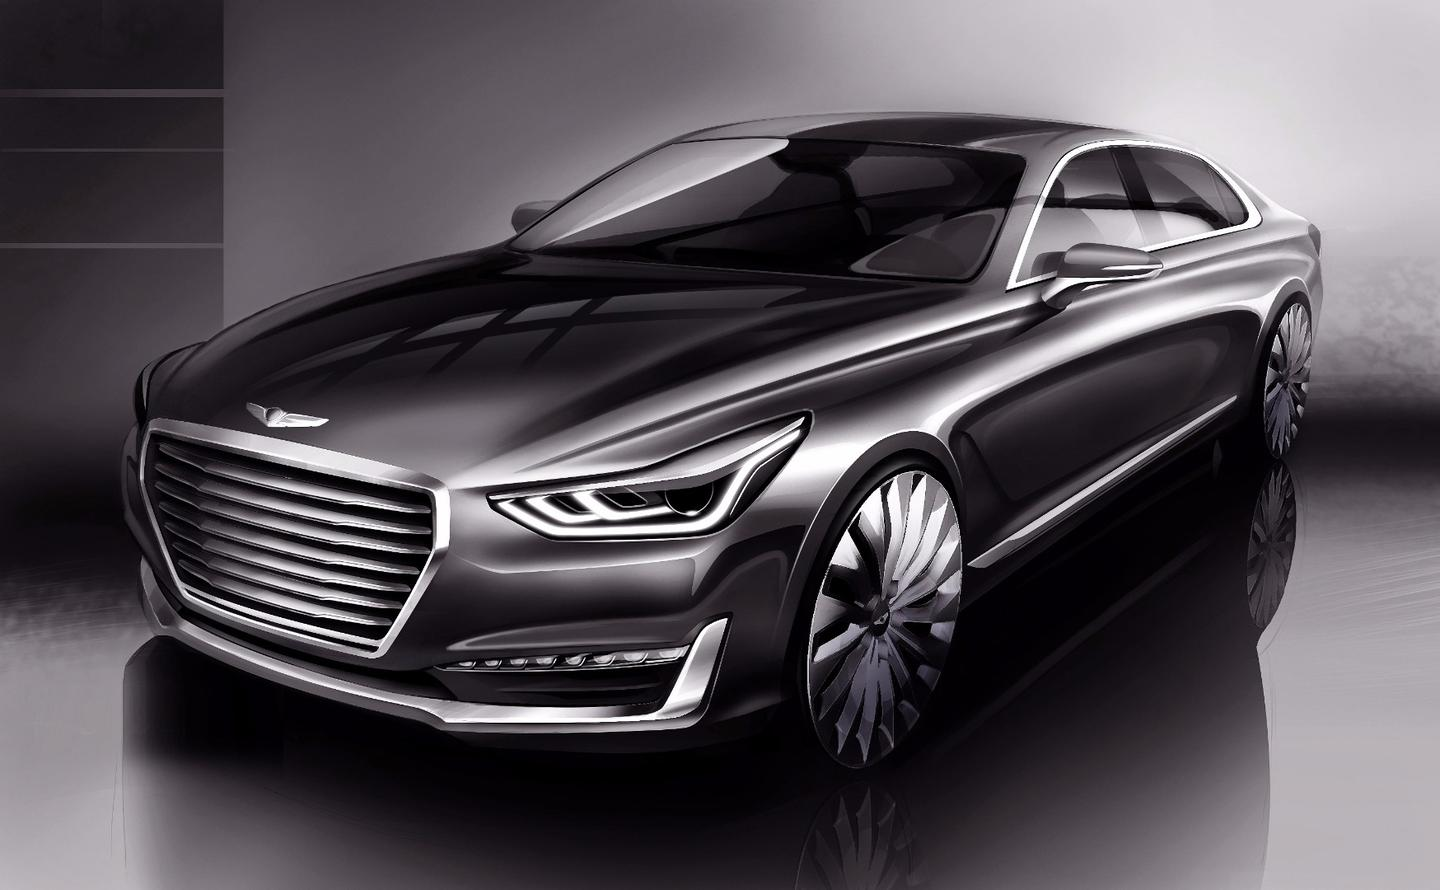 A rendering showing the design of Hyundai's Genesis luxury sub-brand, the G90